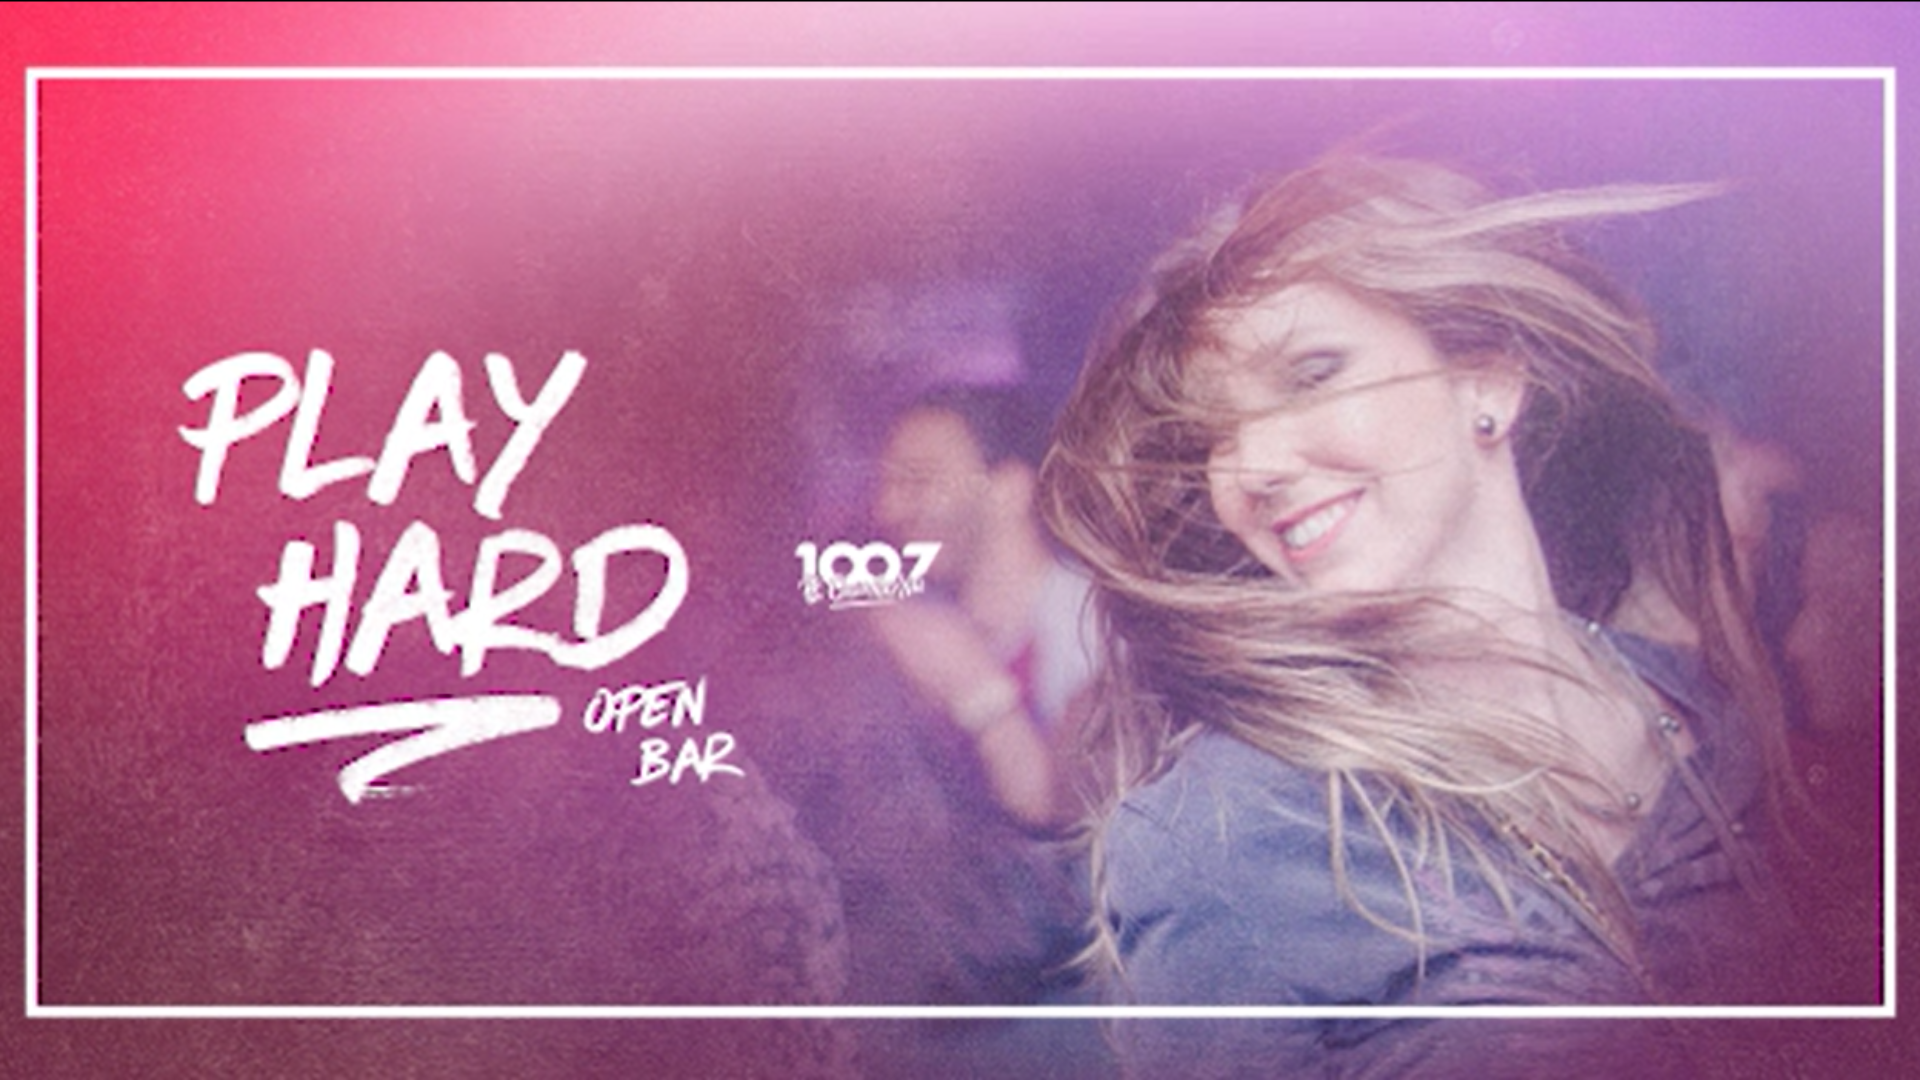 PLAY HARD [ED OPEN BAR] 1007 BC